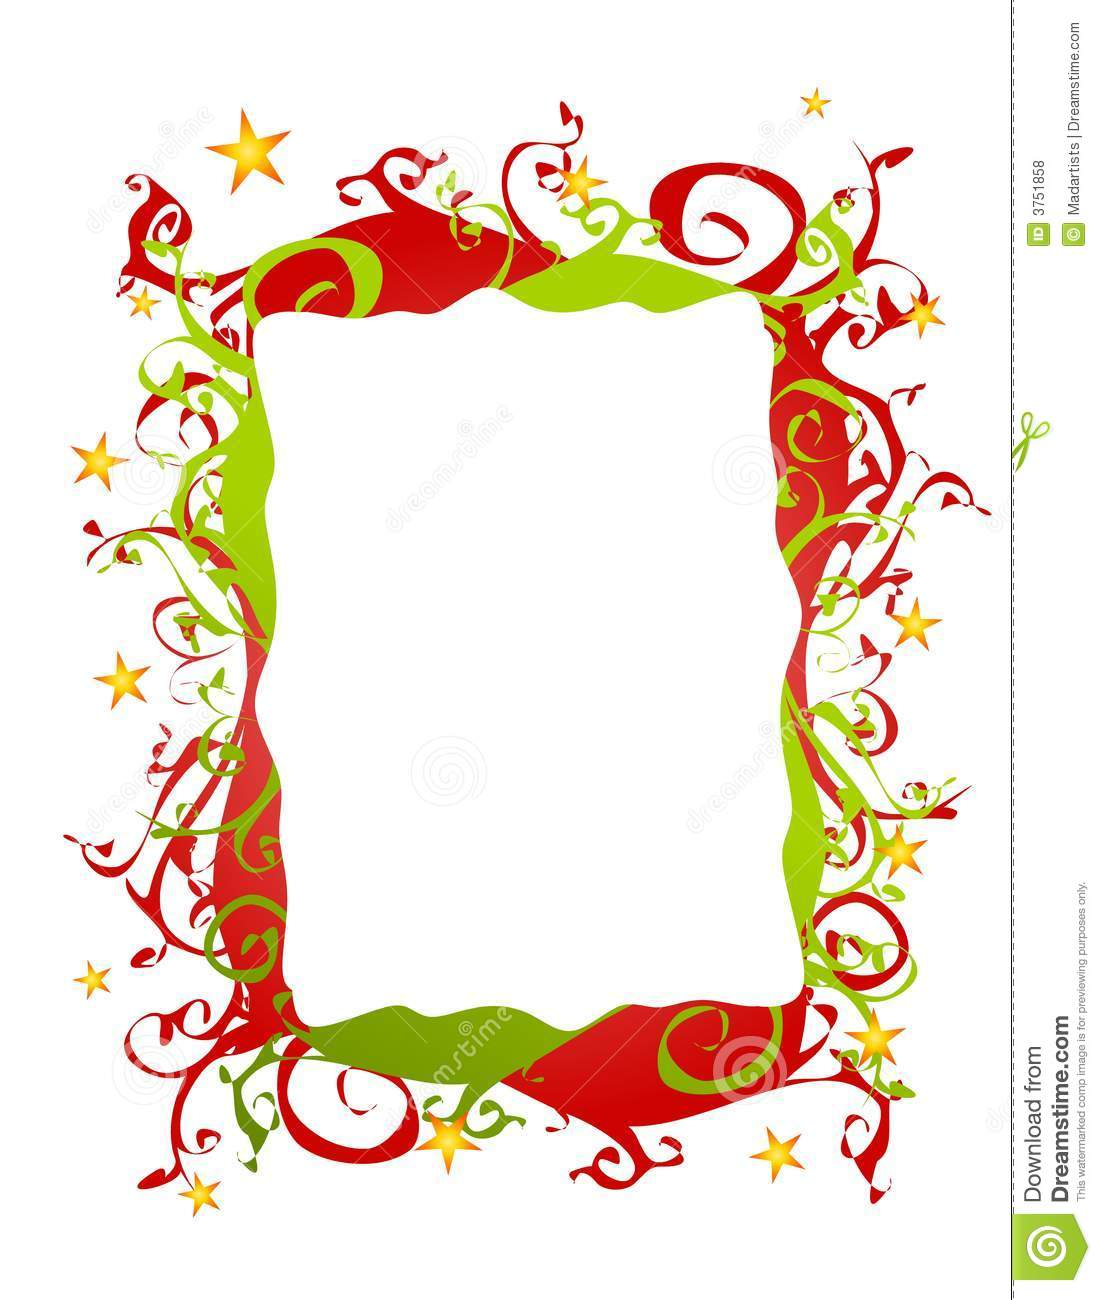 Christmas Borders Clip Art .. - Christmas Border Clip Art Free Download